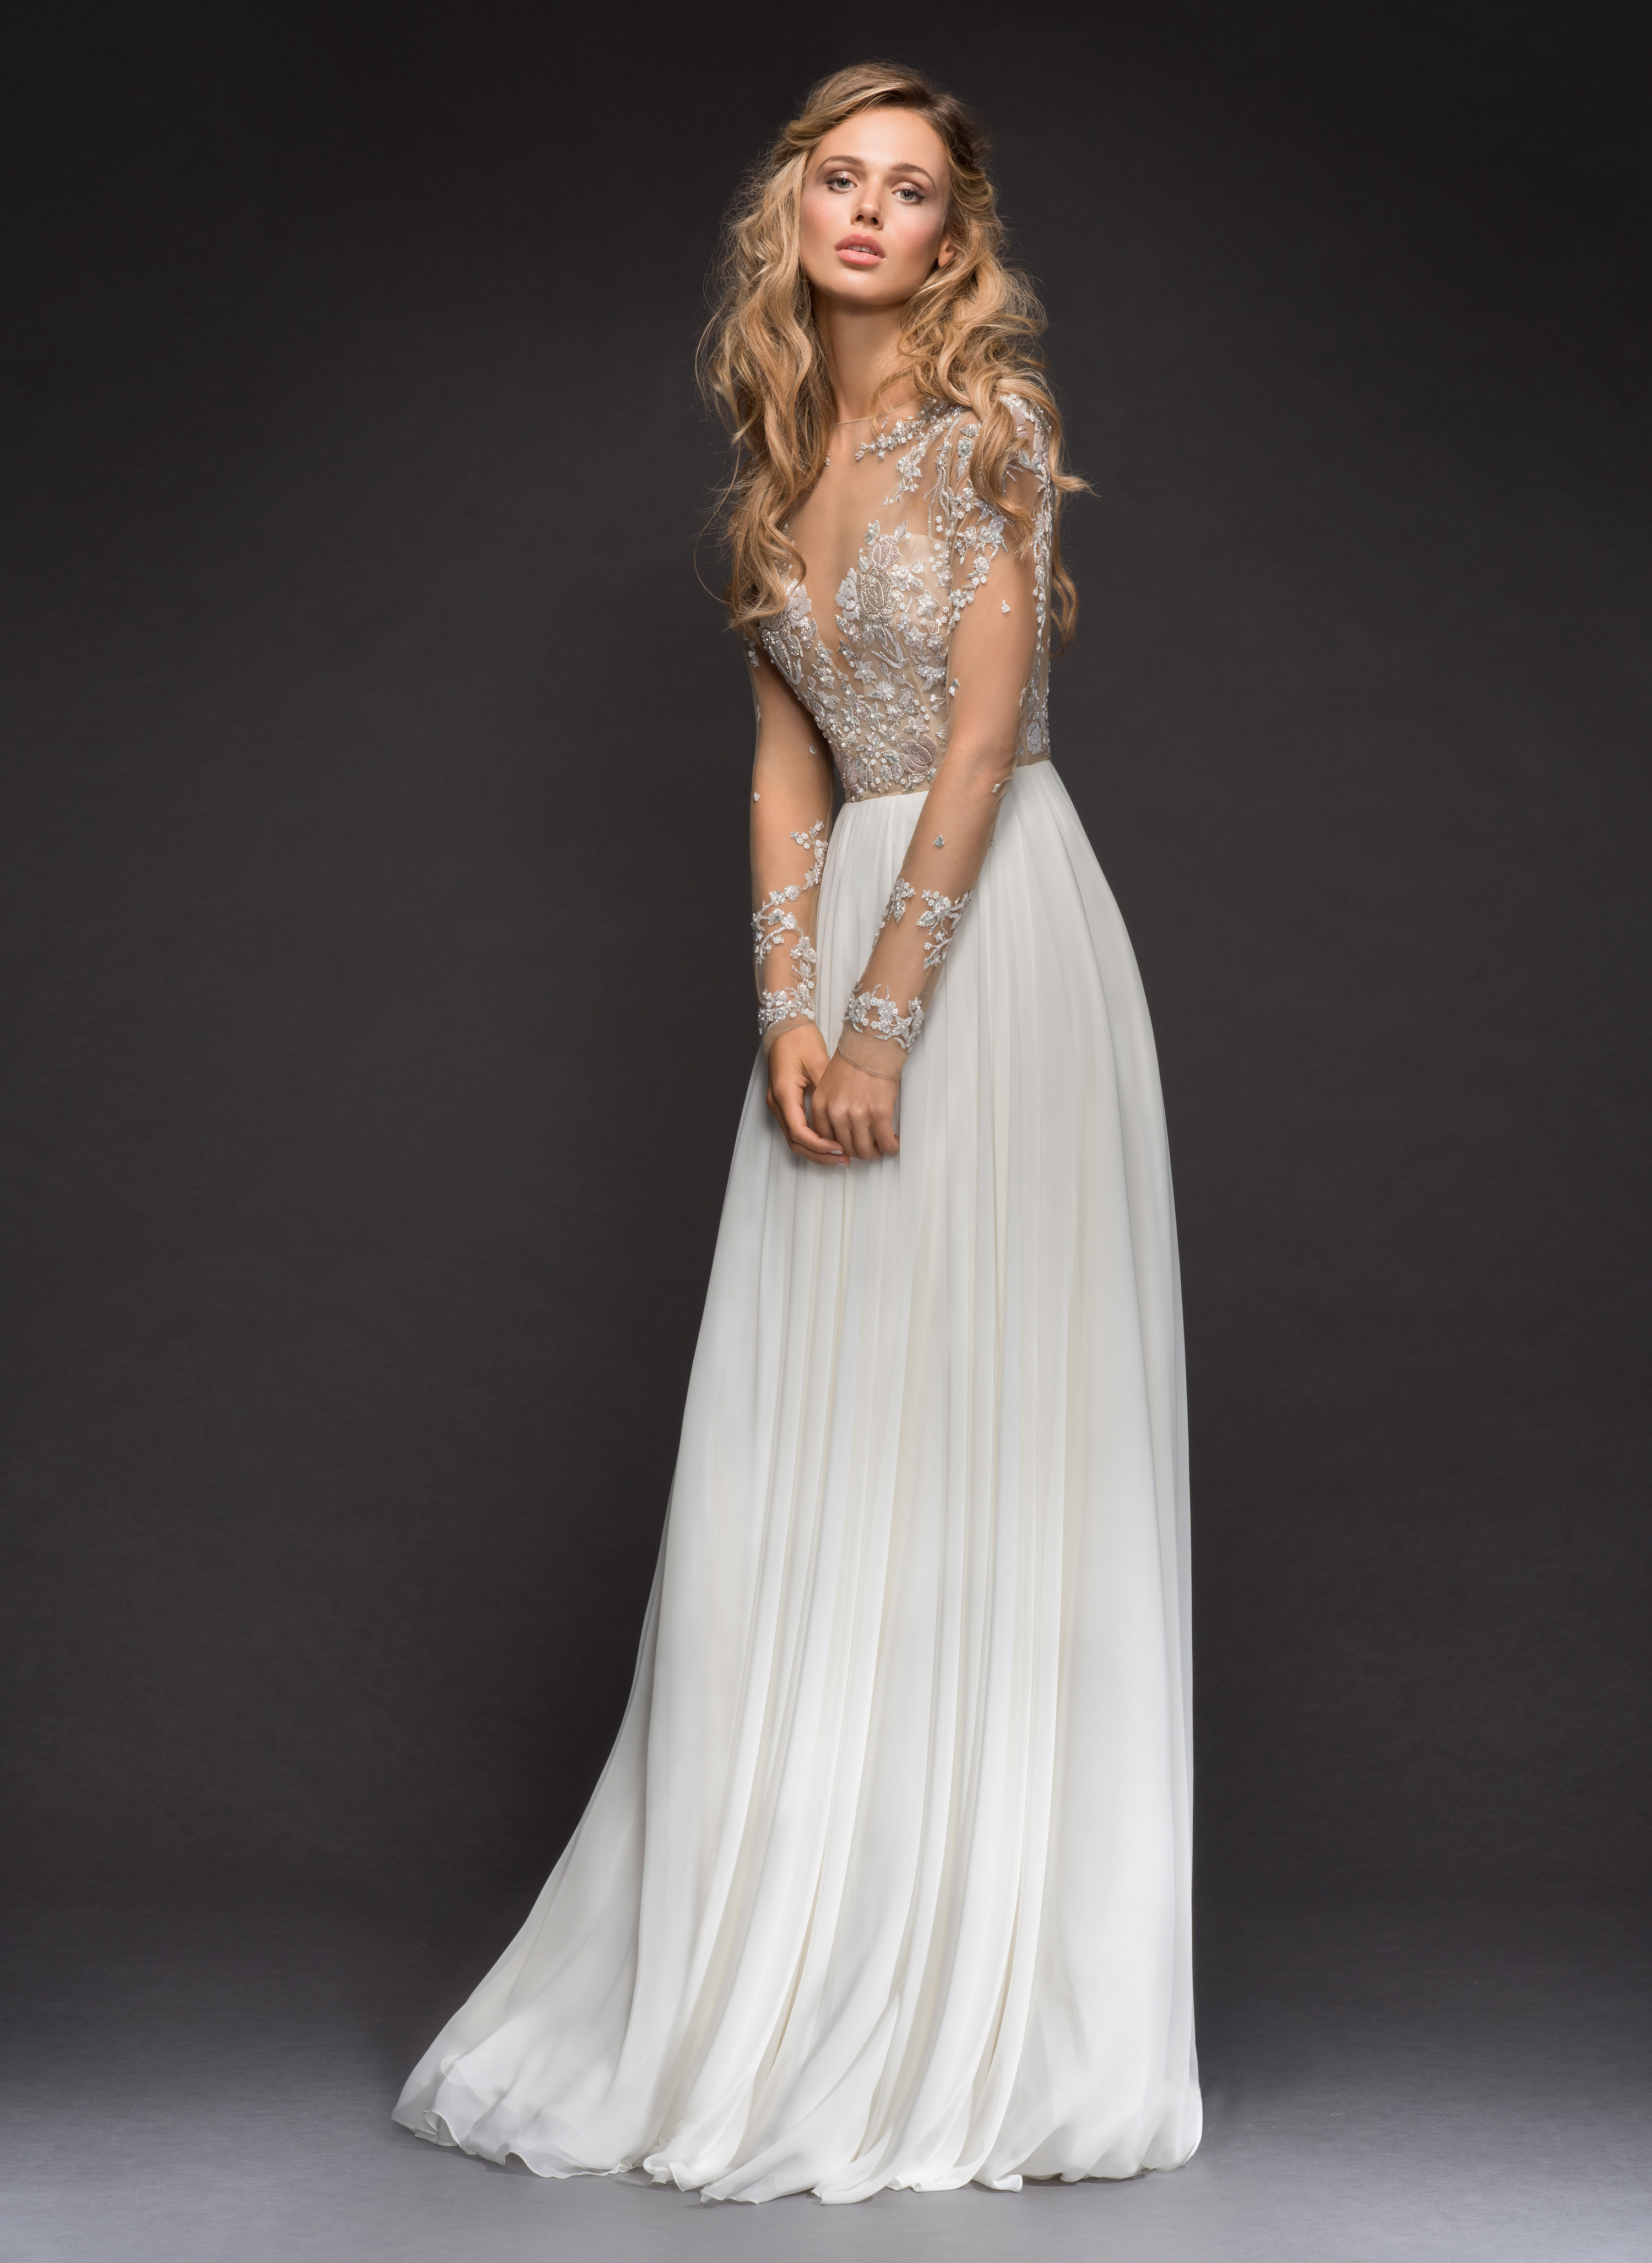 Bridal Gowns And Wedding Dresses By Jlm Couture Style 6807 Pascal